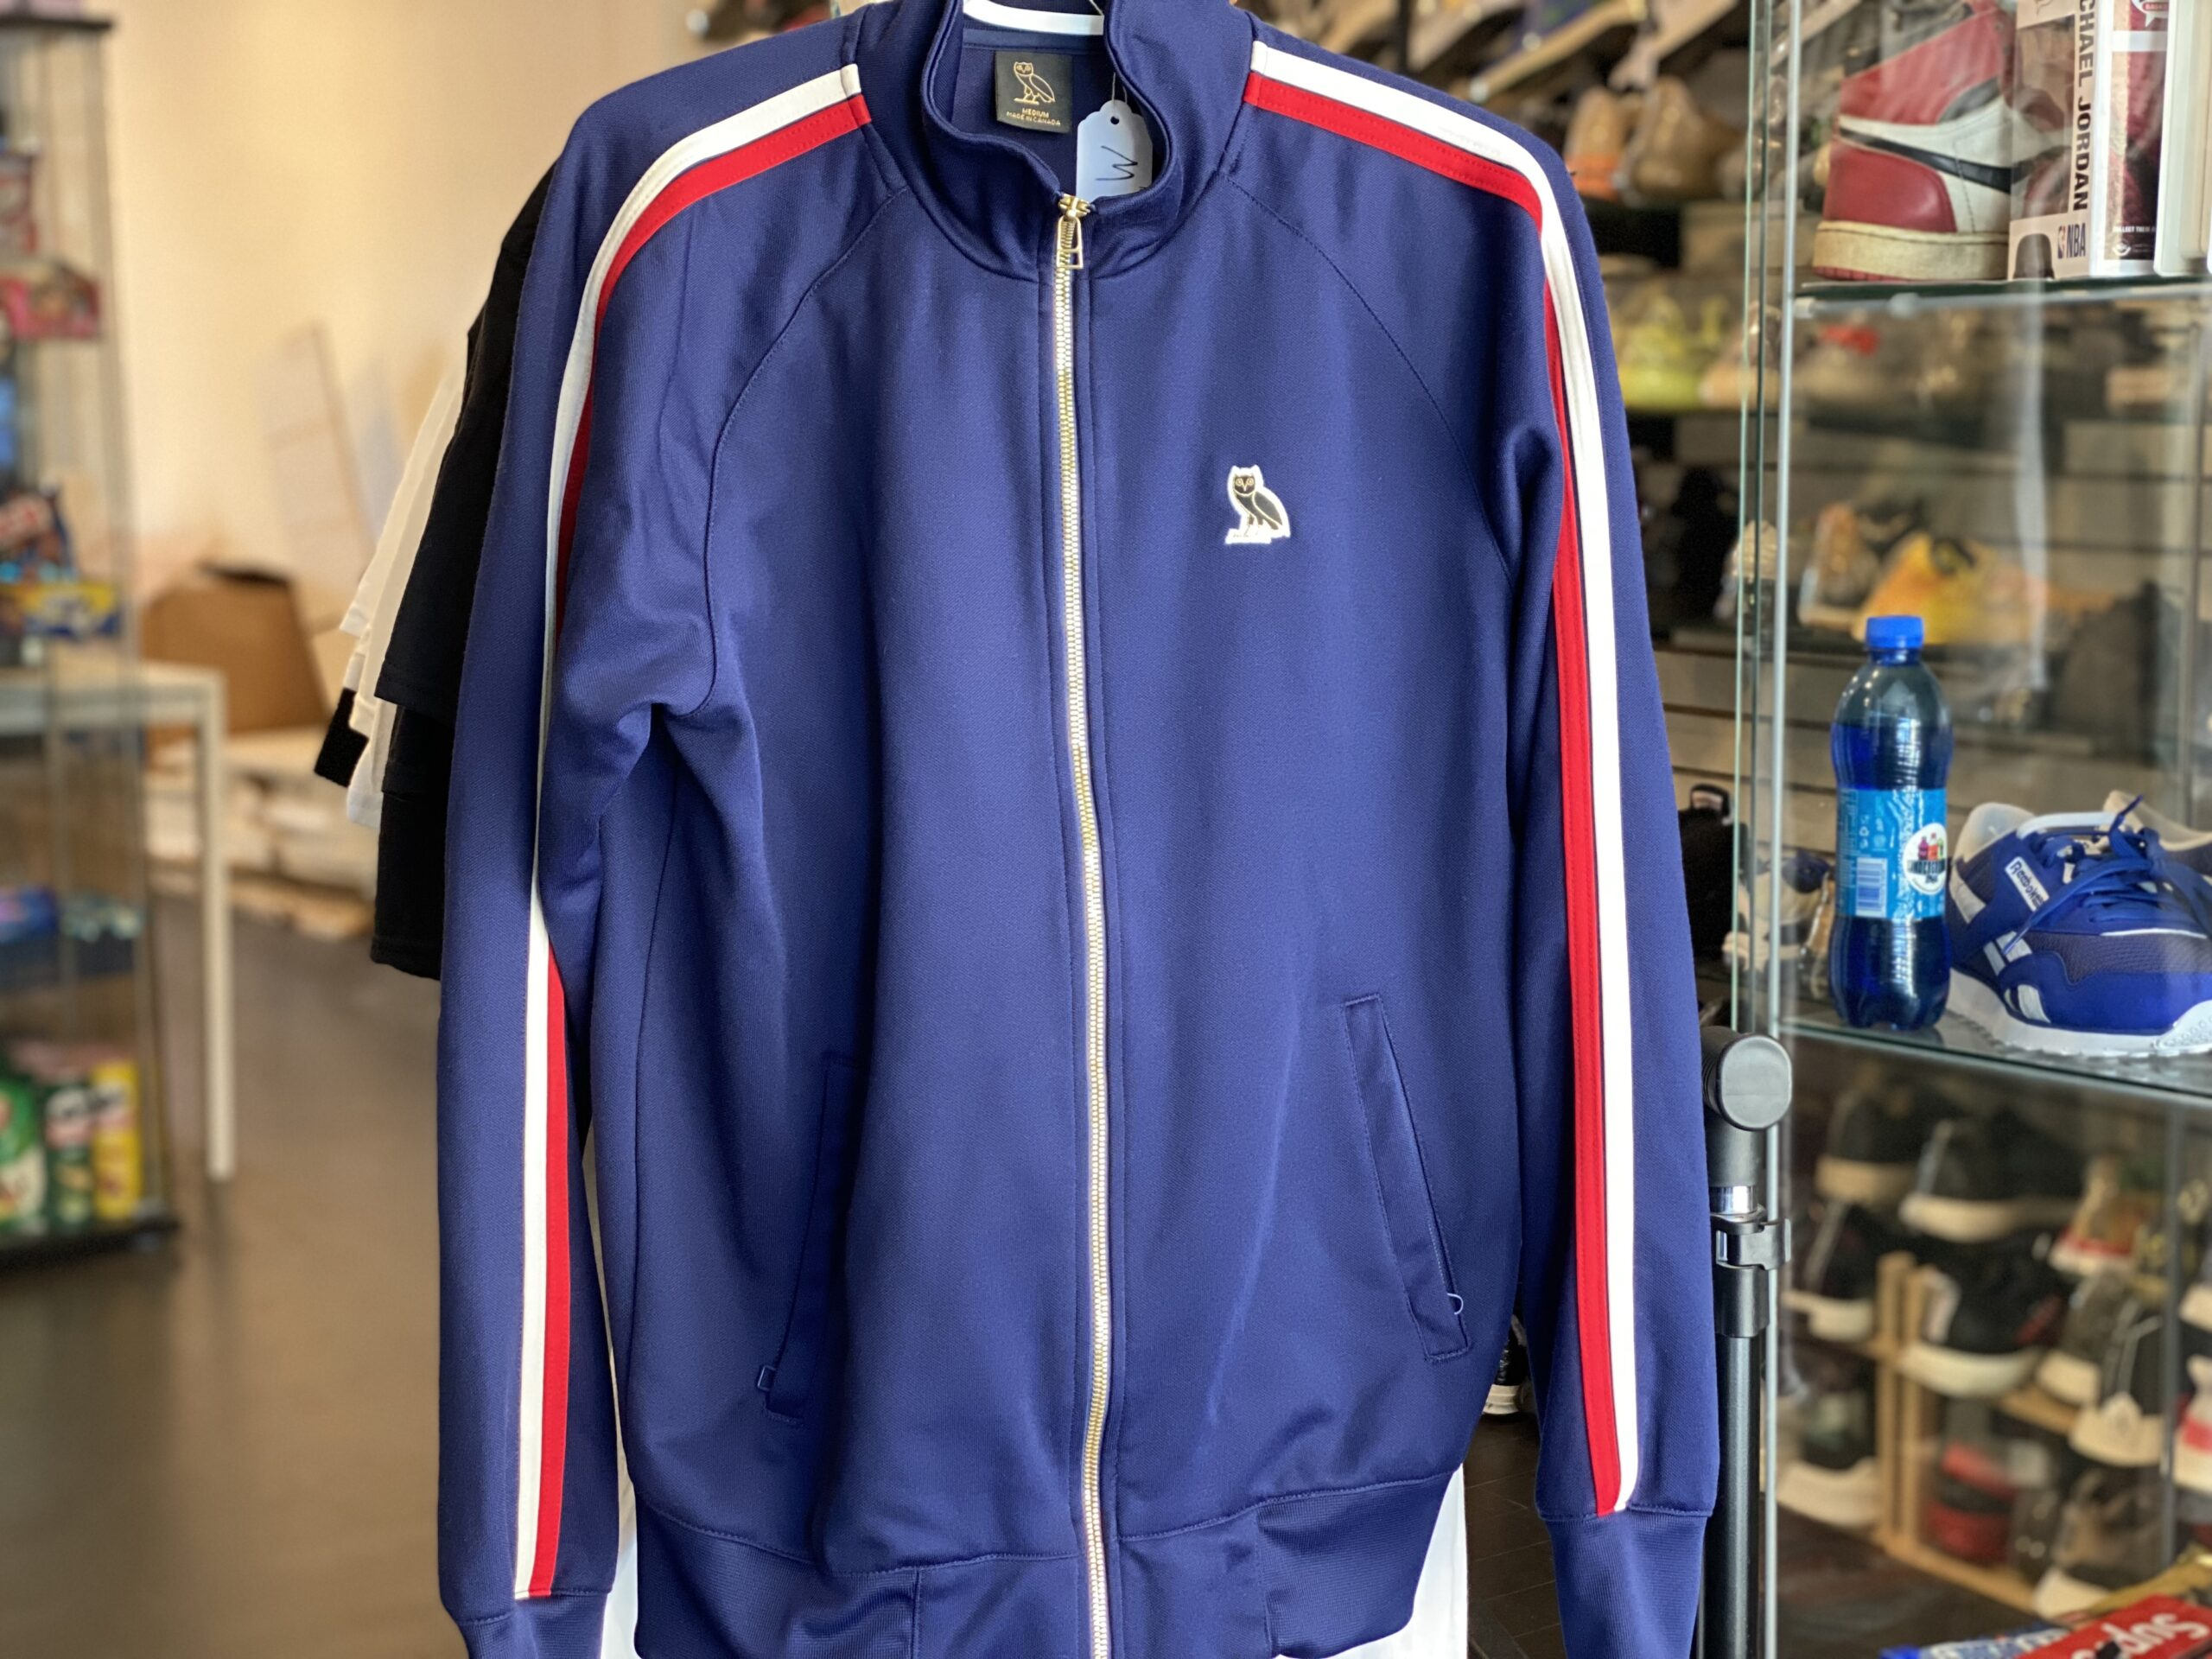 Preowned October's Very Own OVO Zip Up Track Jacket Blue Size M